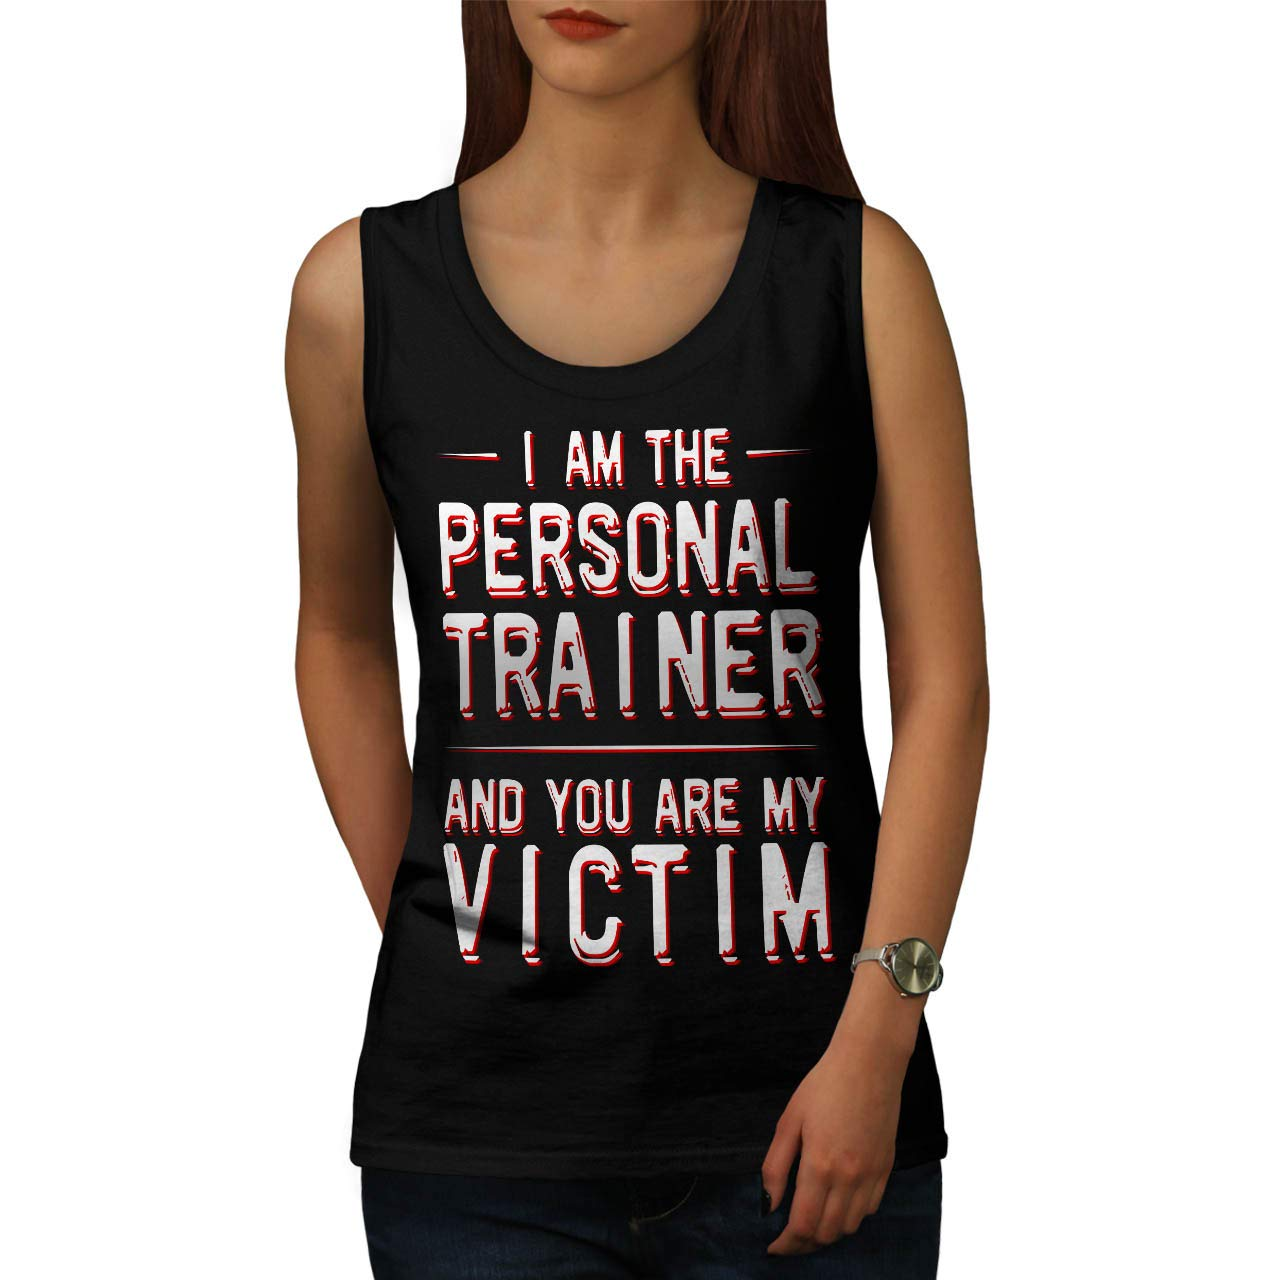 d2f63aa3a Amazon.com: wellcoda Personal Trainer Womens Tank Top, Victim Funny Active  Sports Shirt: Clothing